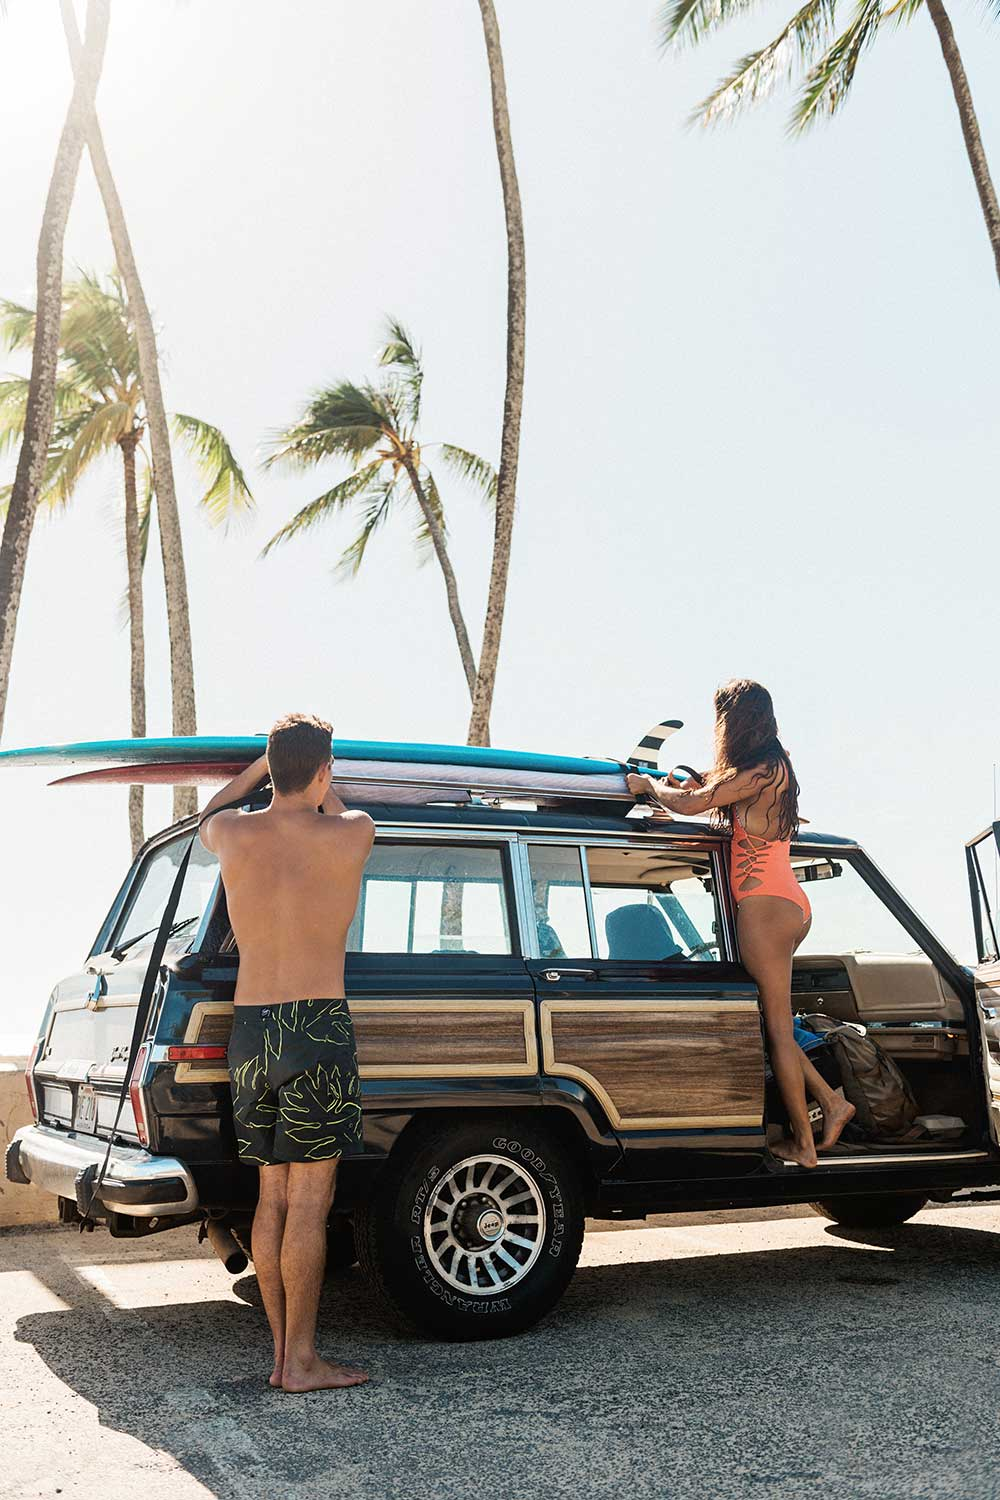 Man and woman taking surfboards from top of car